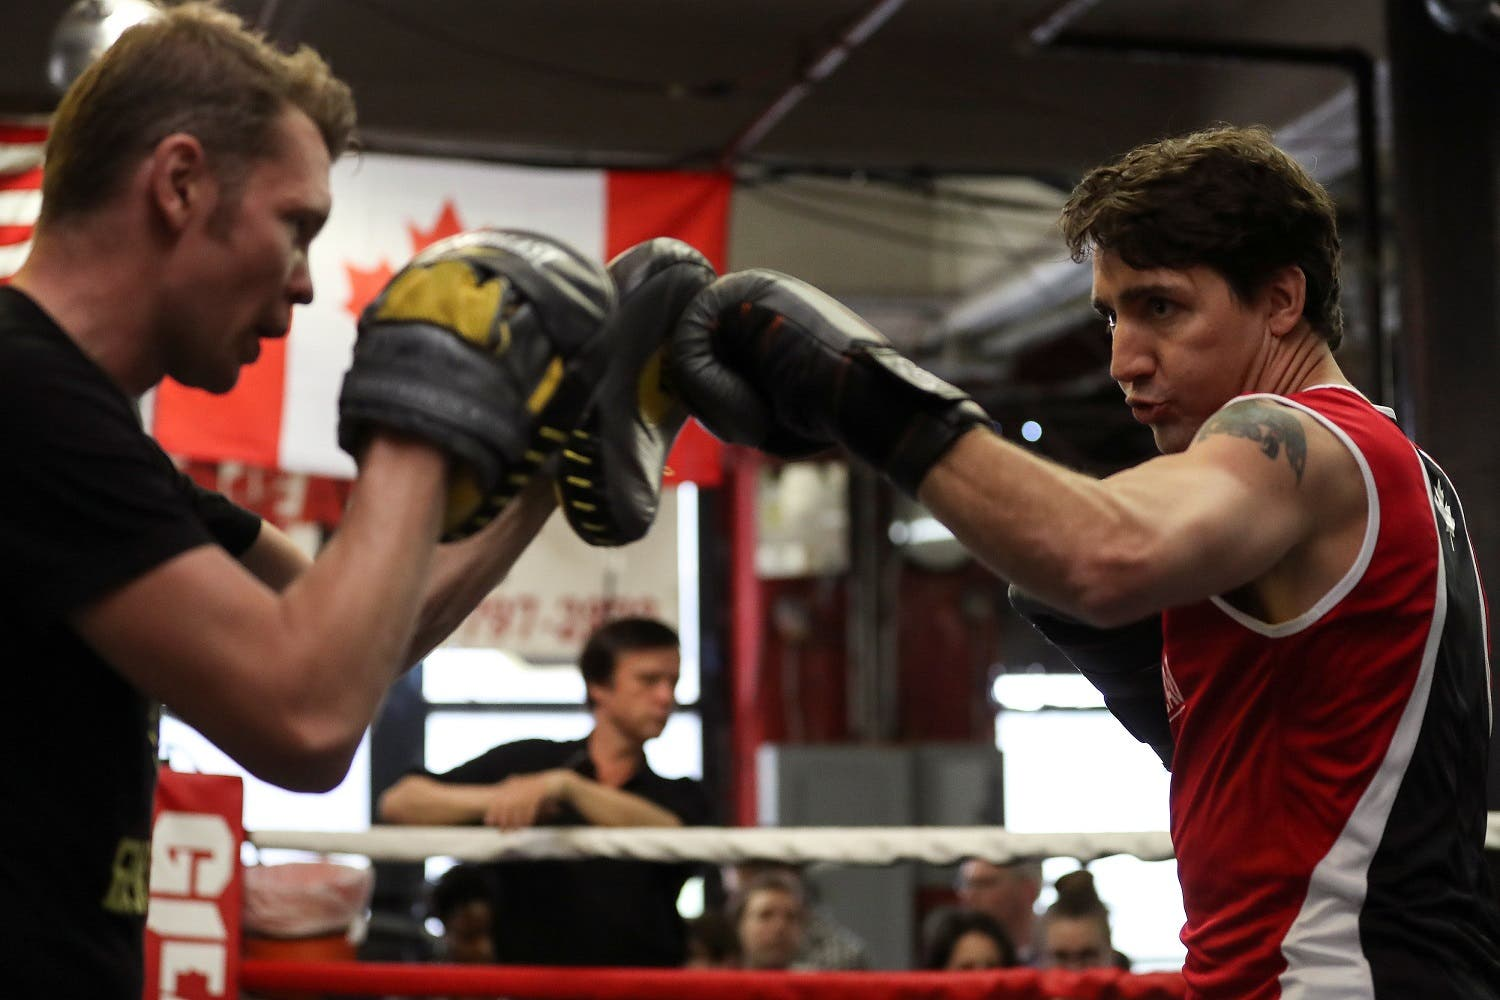 Canadian Prime Minister Justin Trudeau (R) spars with professional boxer Yuri Foreman in the ring at Gleason's Boxing Gym in the Brooklyn borough of New York, US, April 21, 2016. (Reuters)